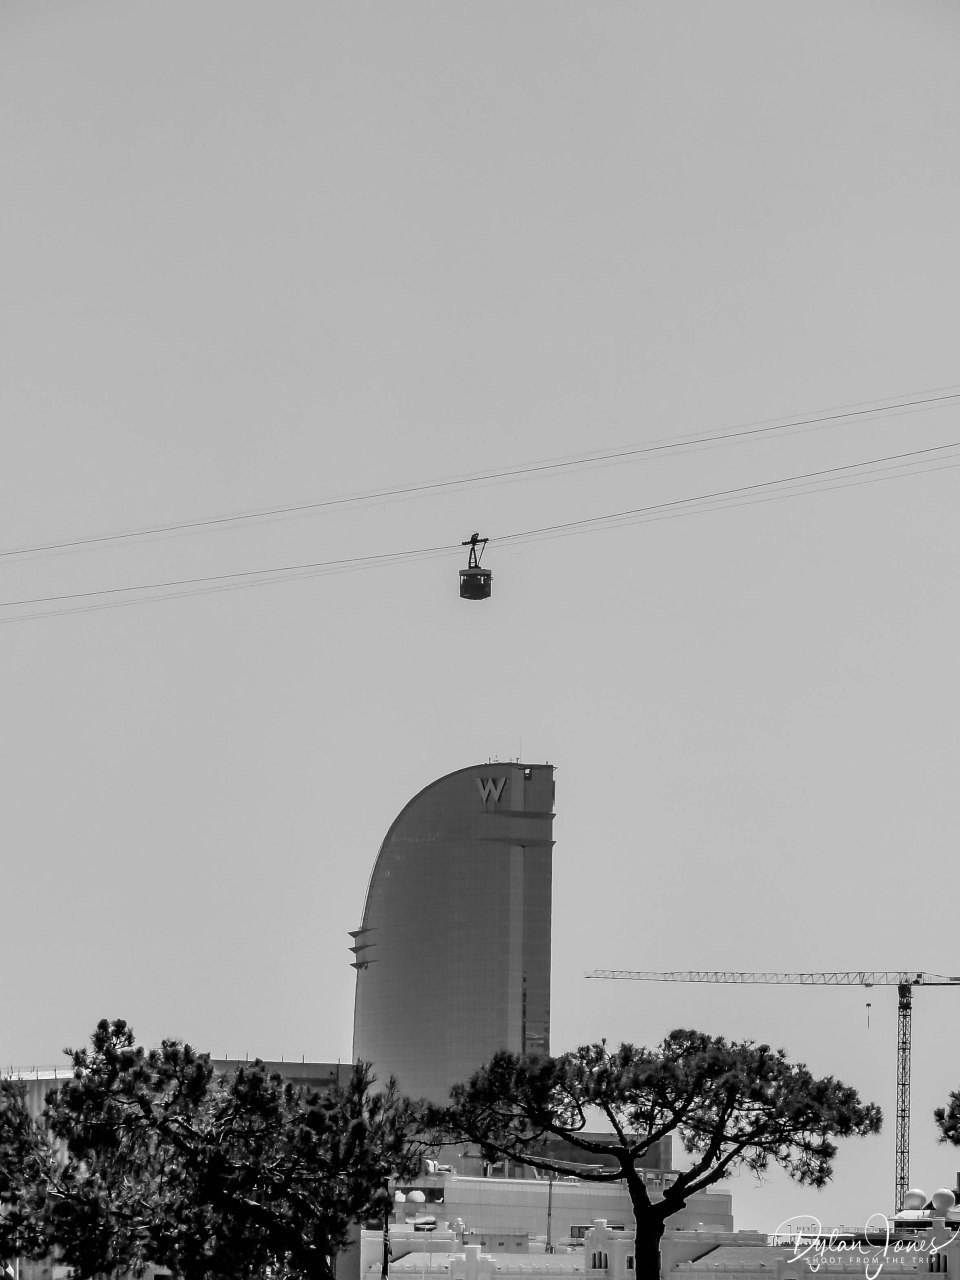 Cable cars of Barcelona